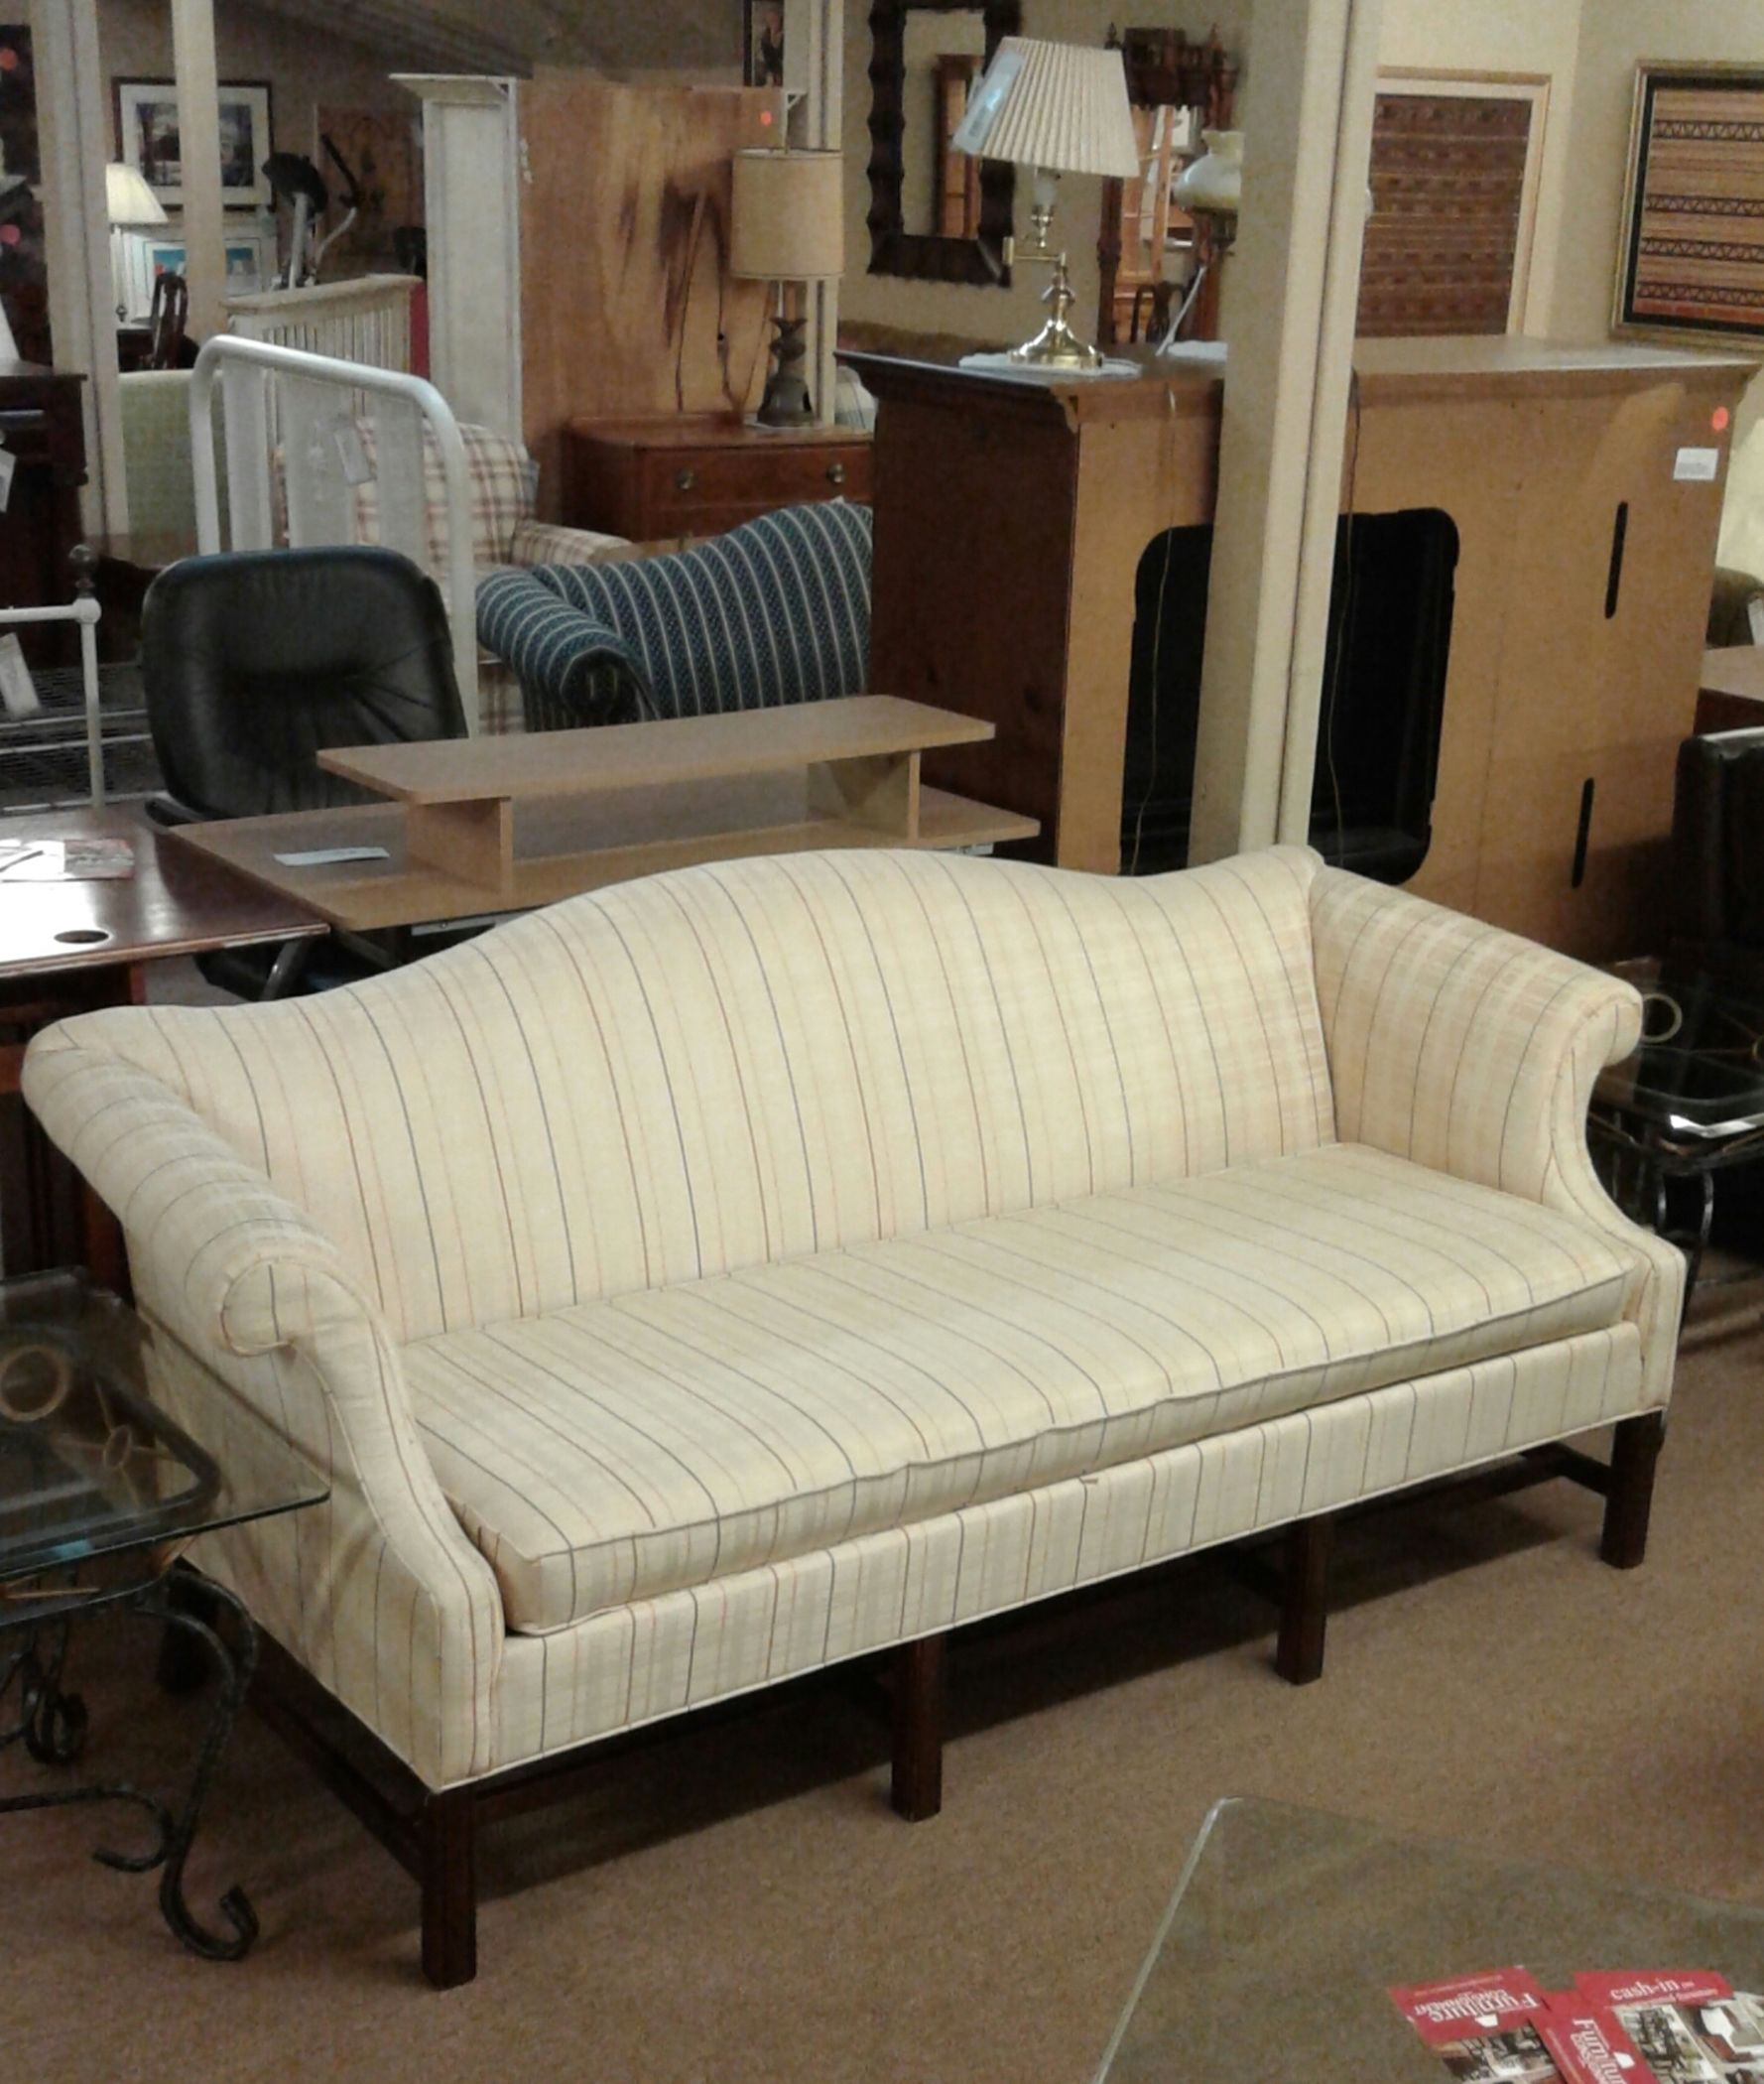 ETHAN ALLEN CAMEL BACK SOFA Delmarva Furniture Consignment : large20170106080732 from www.delmarvaconsignment.com size 1778 x 2100 jpeg 334kB